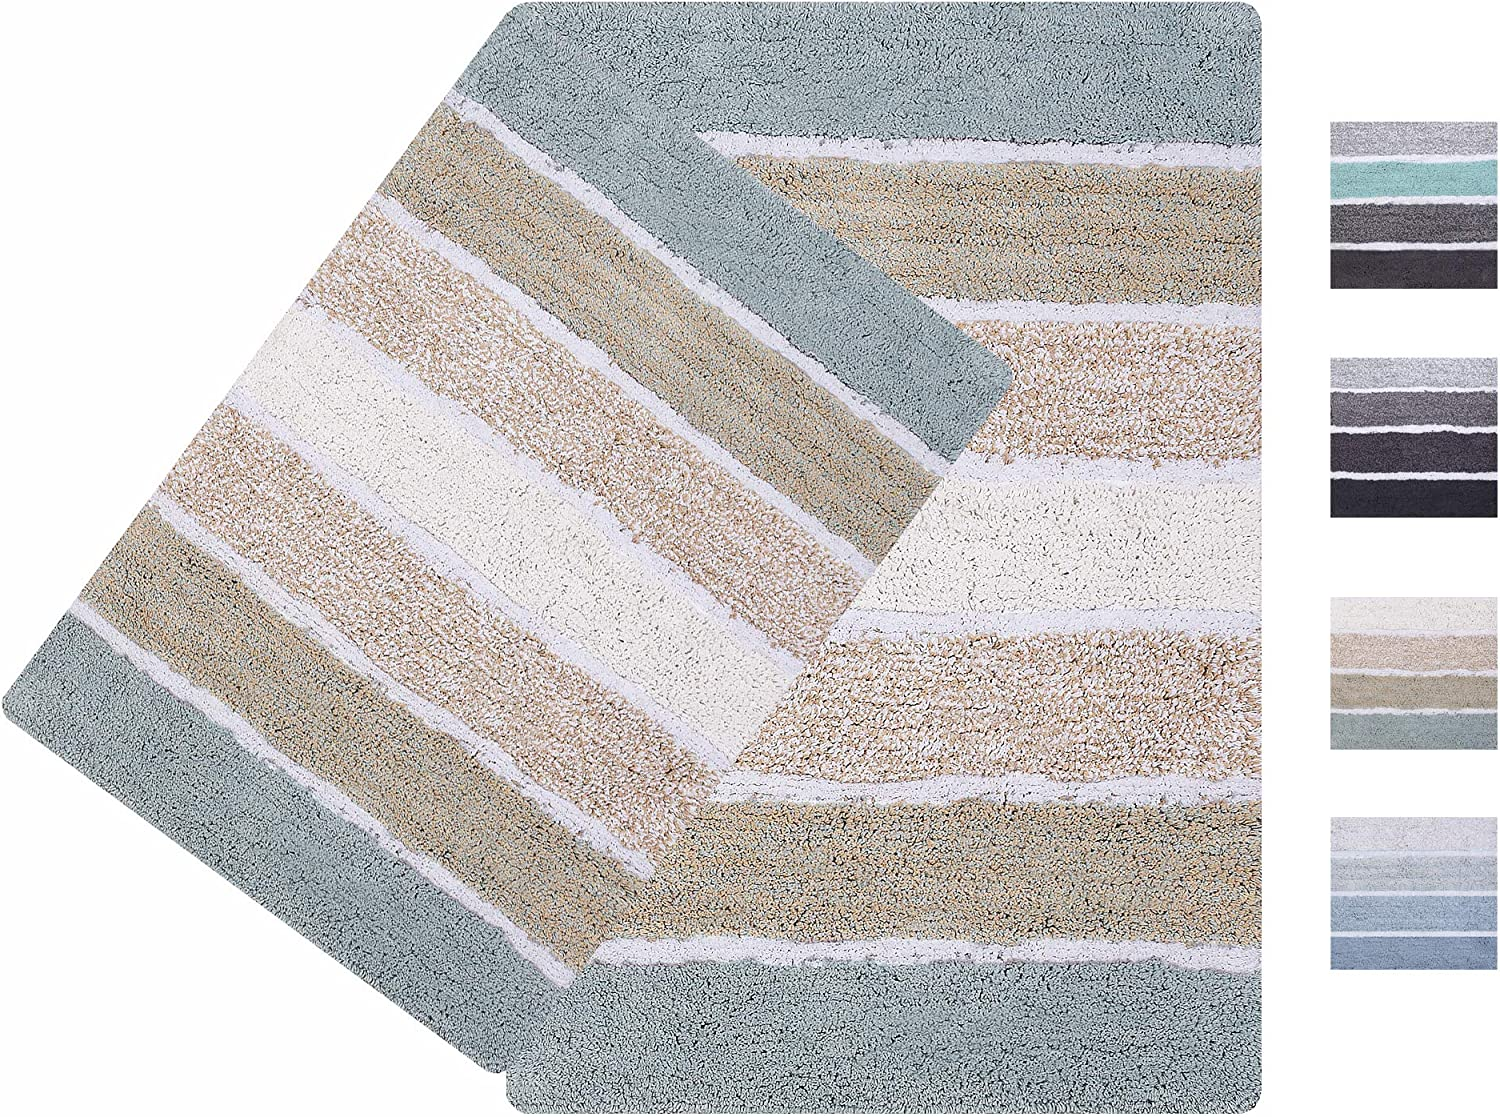 Quilted Stripe Luxury Bath Rug Set of 2, Mat Set, Soft Plush Anti-Skid Shower Rug +Toilet Mat.Quilted Rugs, Super Absorbent mats, Machine Washable Bath Mat,Size 21x32- 17x24 Spa Grey-Beige